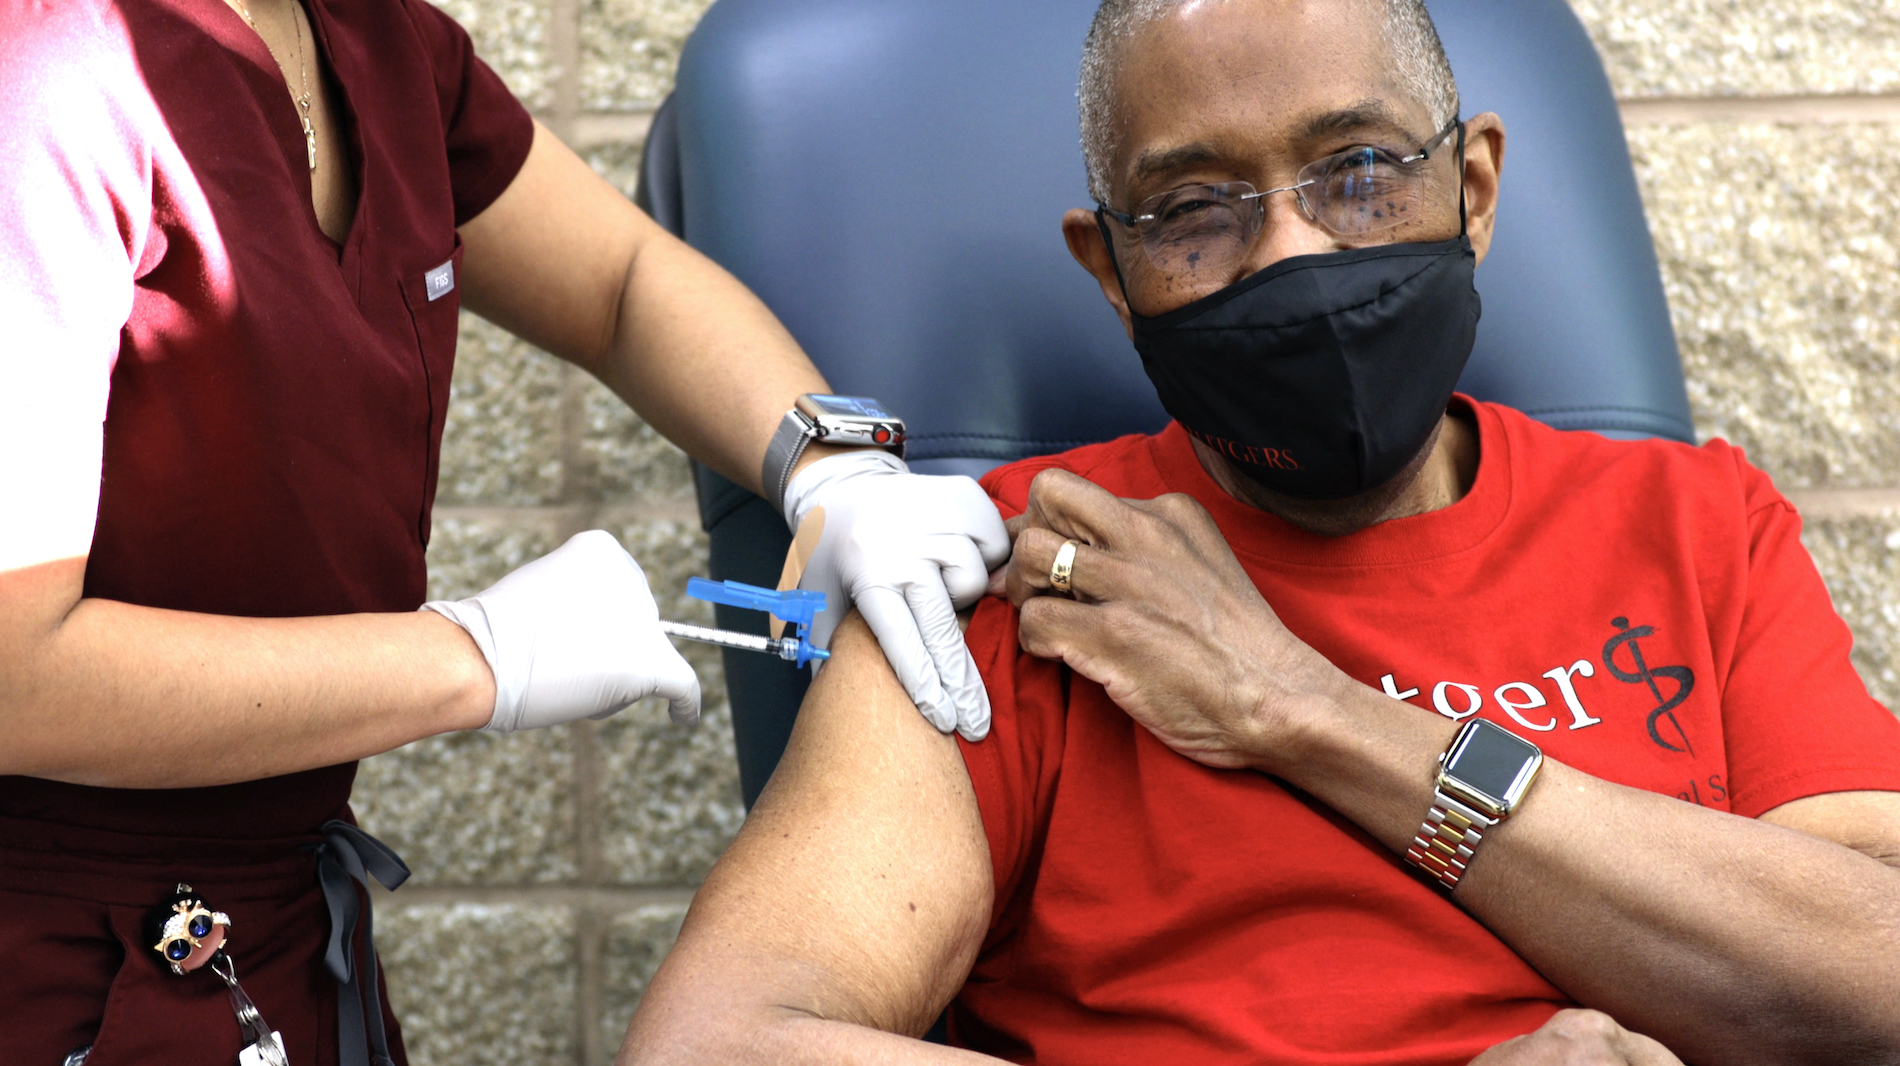 Robert Johnson, dean of Rutgers New Jersey Medical School, receives his first COVID-19 shot.